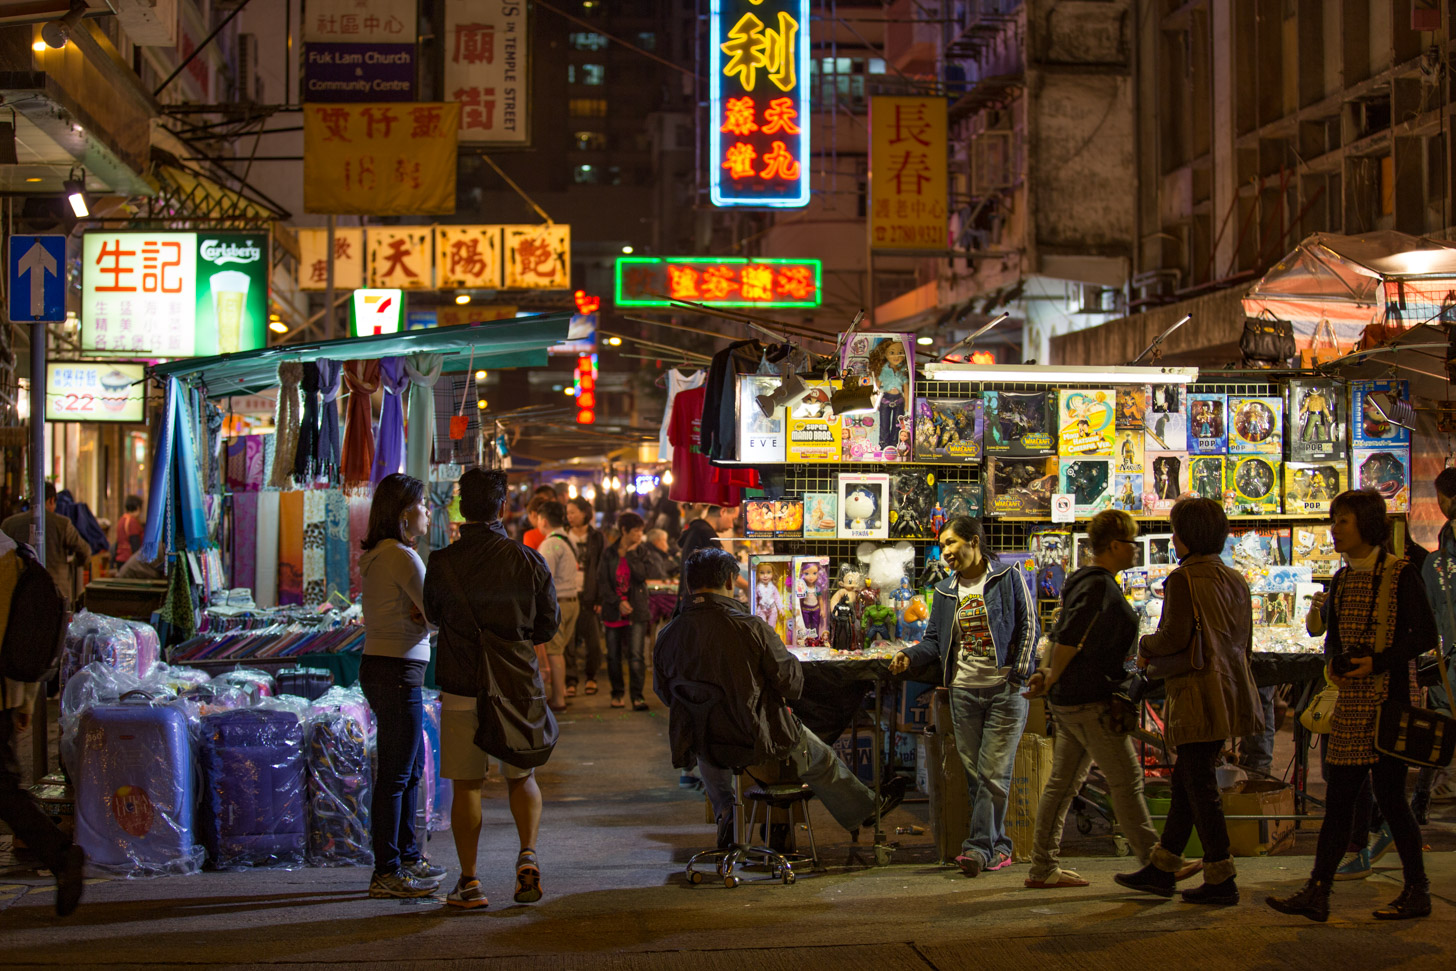 De beroemde Temple Street Night Market